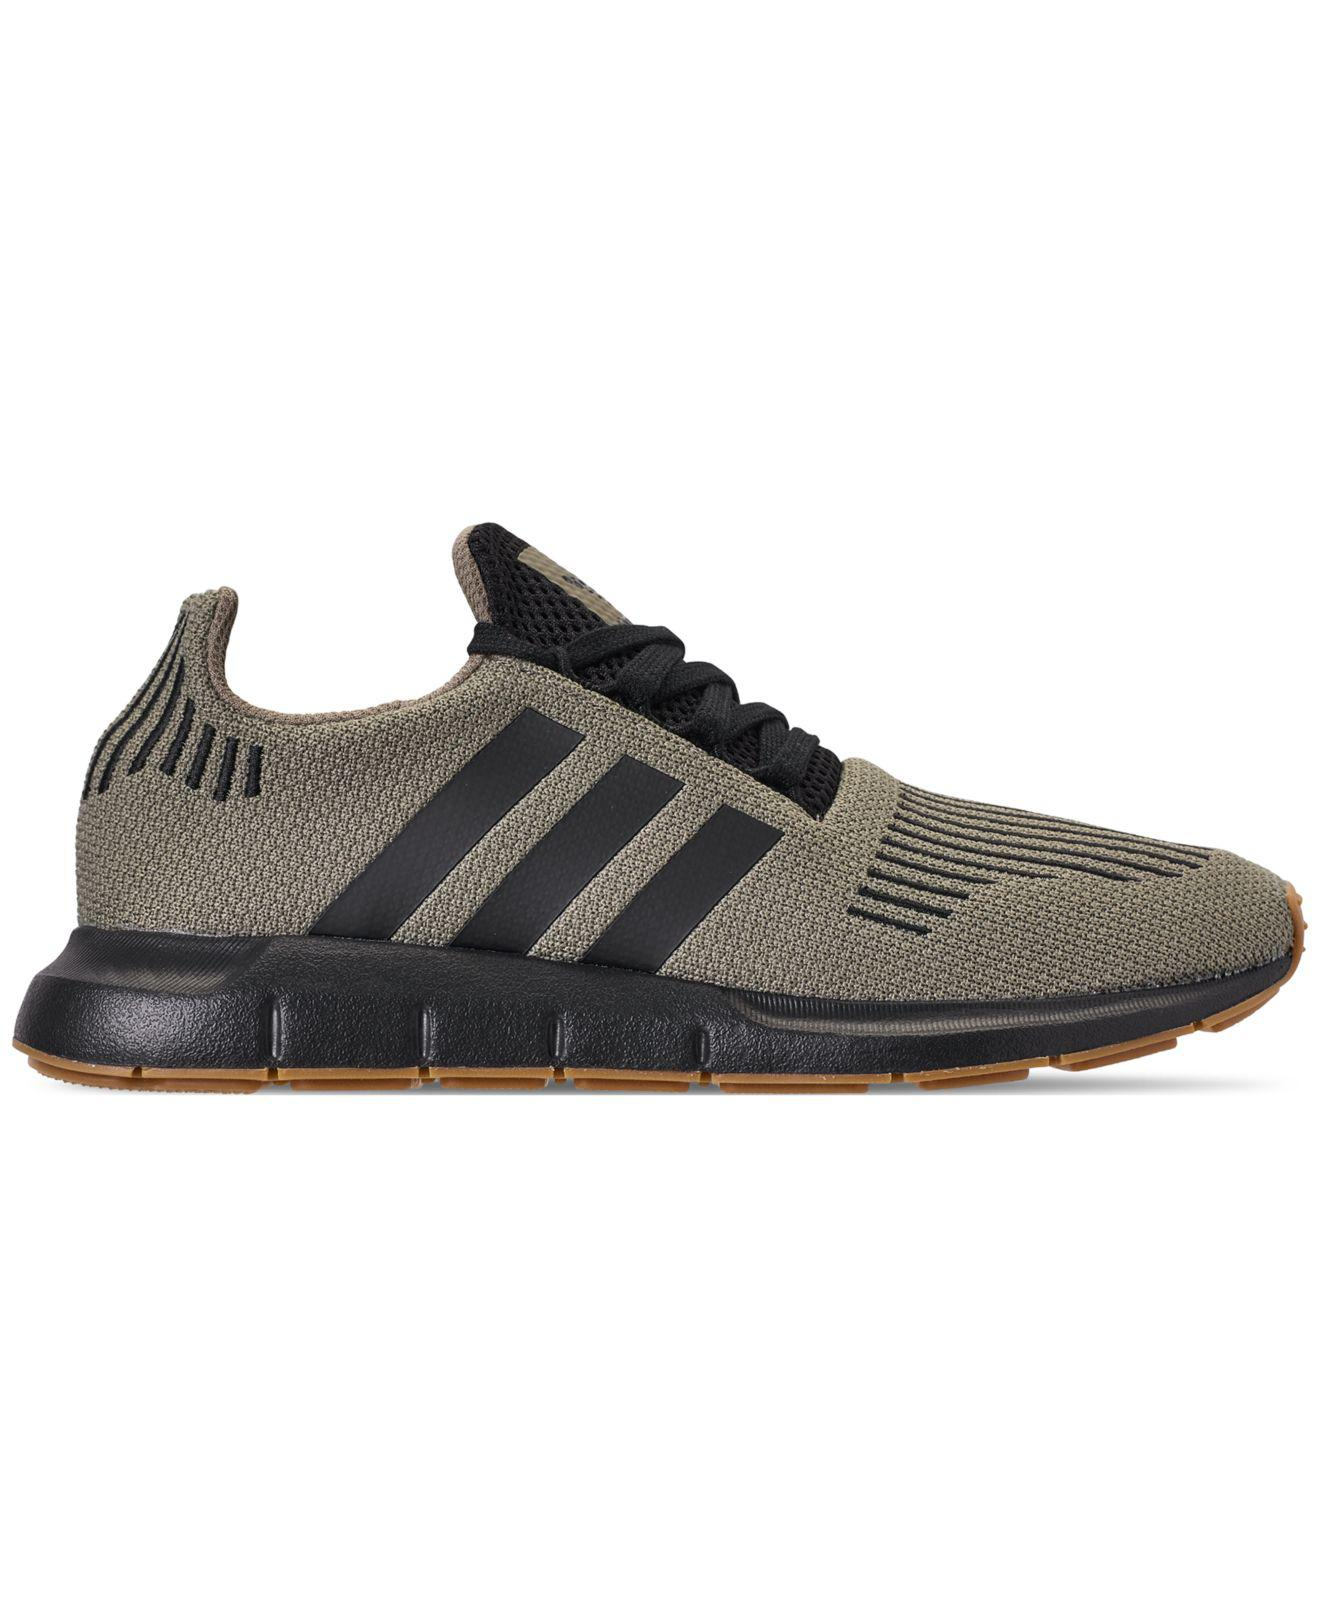 331670ac4 Lyst - adidas Swift Run Casual Sneakers From Finish Line in Black for Men